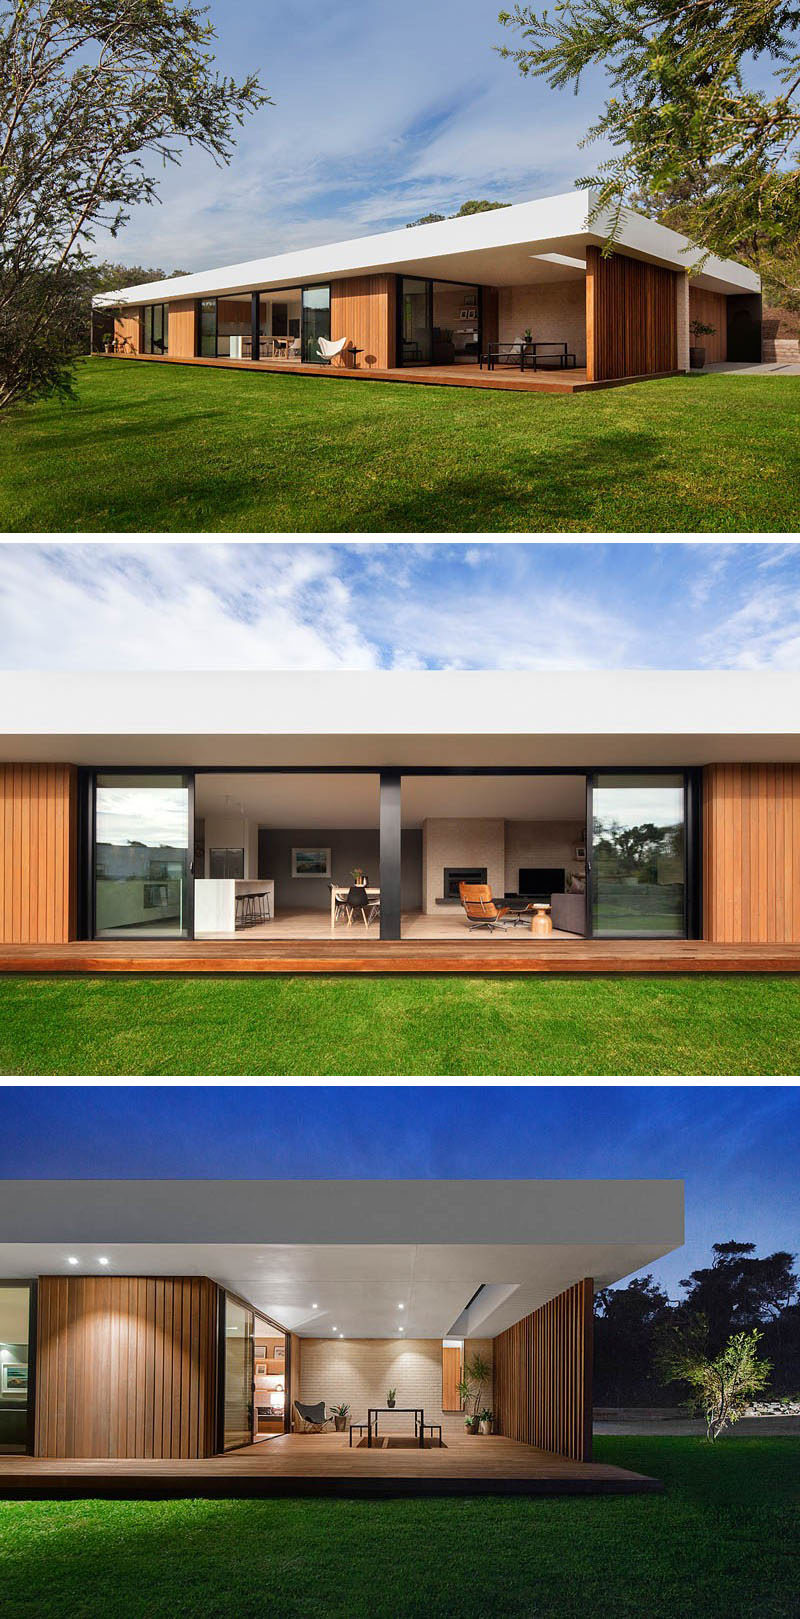 23 Awesome Australian Homes That Perfect Indoor / Outdoor Living // Long sliding glass doors along the back side of this home open up onto the backyard as well as onto a covered, lit dining patio - making outdoor dinner parties possible even on rainy nights.